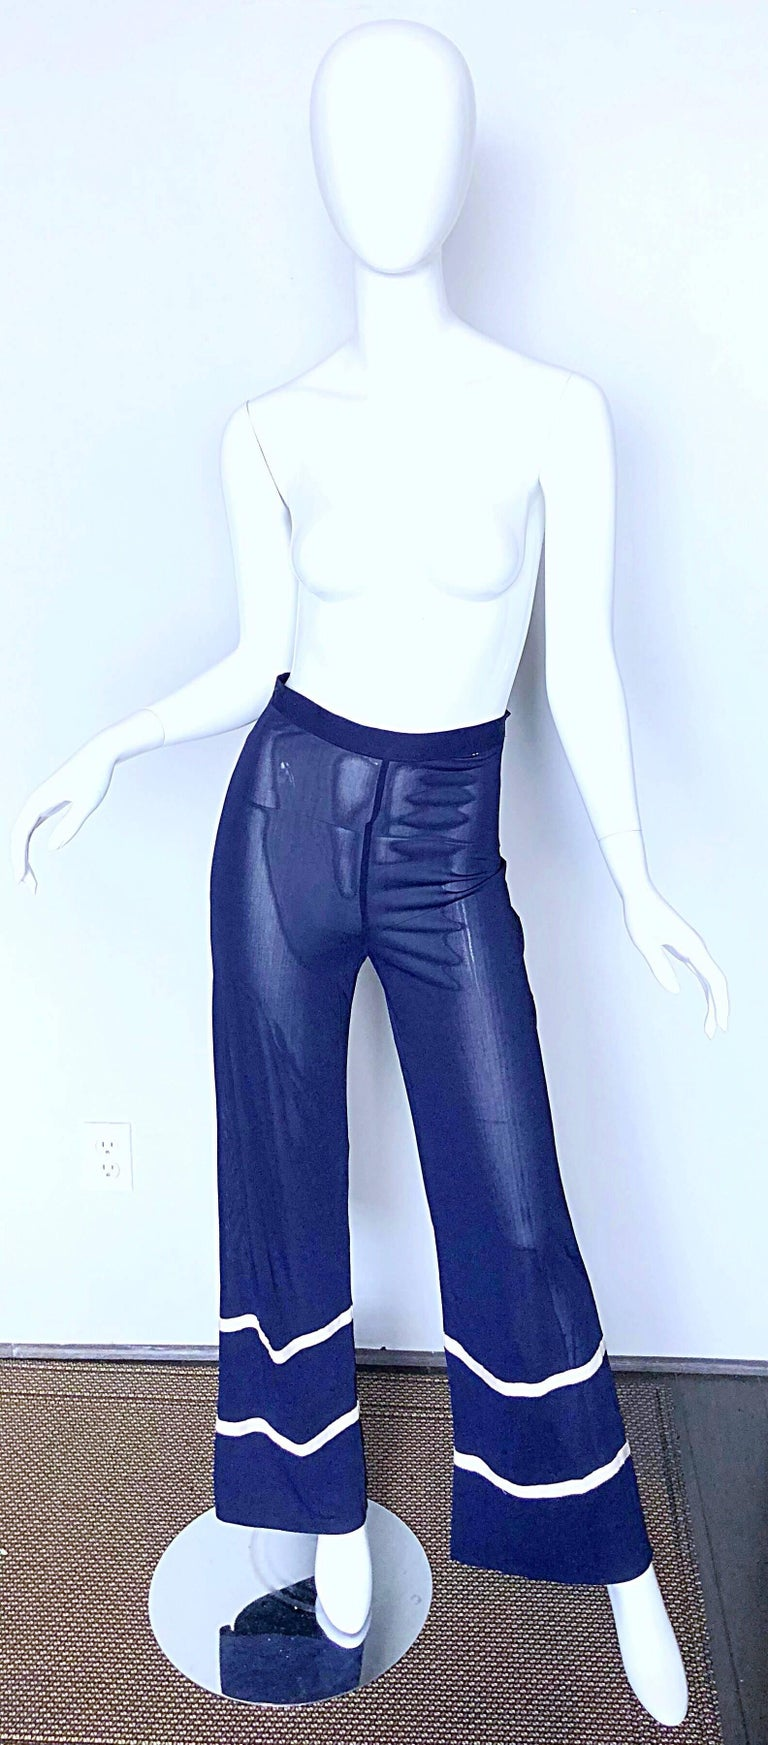 Chic 1990s JEAN PAUL GAULTIER navy blue and white semi sheer rayon jersey nautical wide leg trousers! From the rare Jean Paul Gaultier Classique label. Features a luxurious semi sheer stretch rayon jersey. Two horizontal white ribbons at the hem.